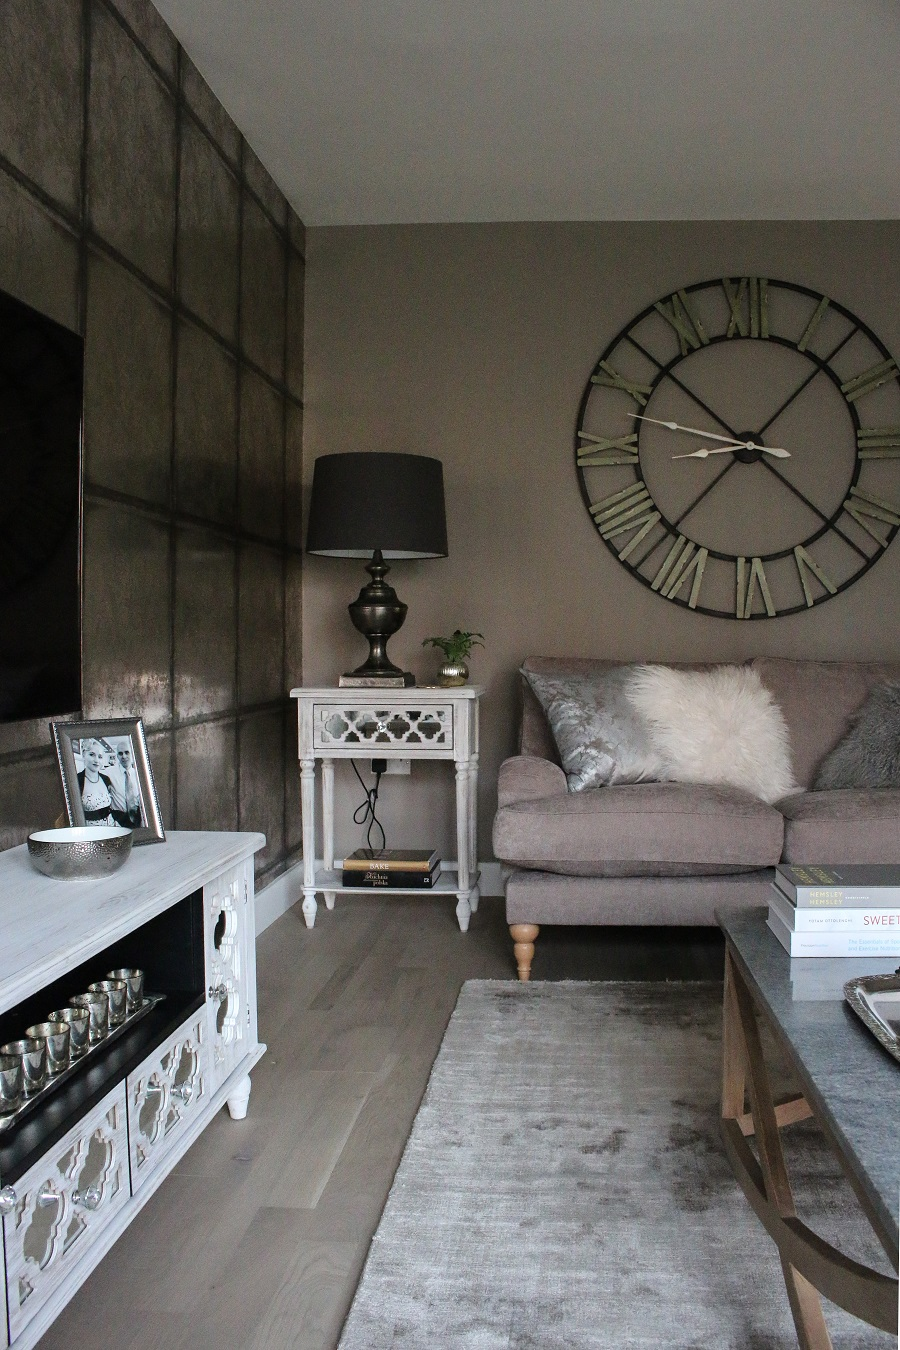 Texture, decorative furniture and silver accents in a neutral and warm living room